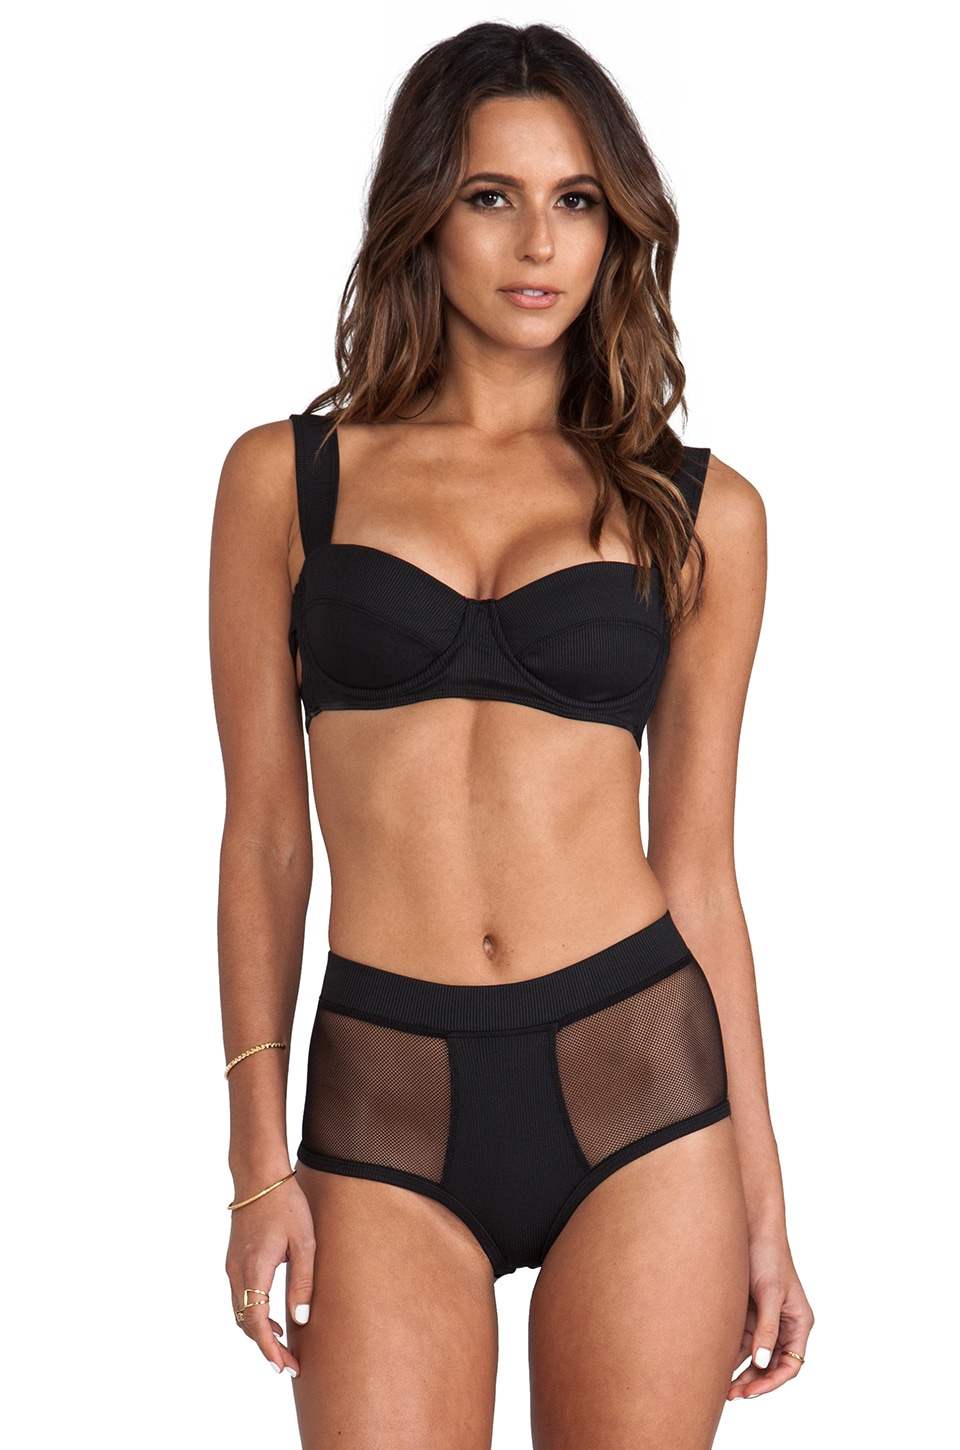 MINIMALE ANIMALE Eastwood Bikini in Outlaw Black